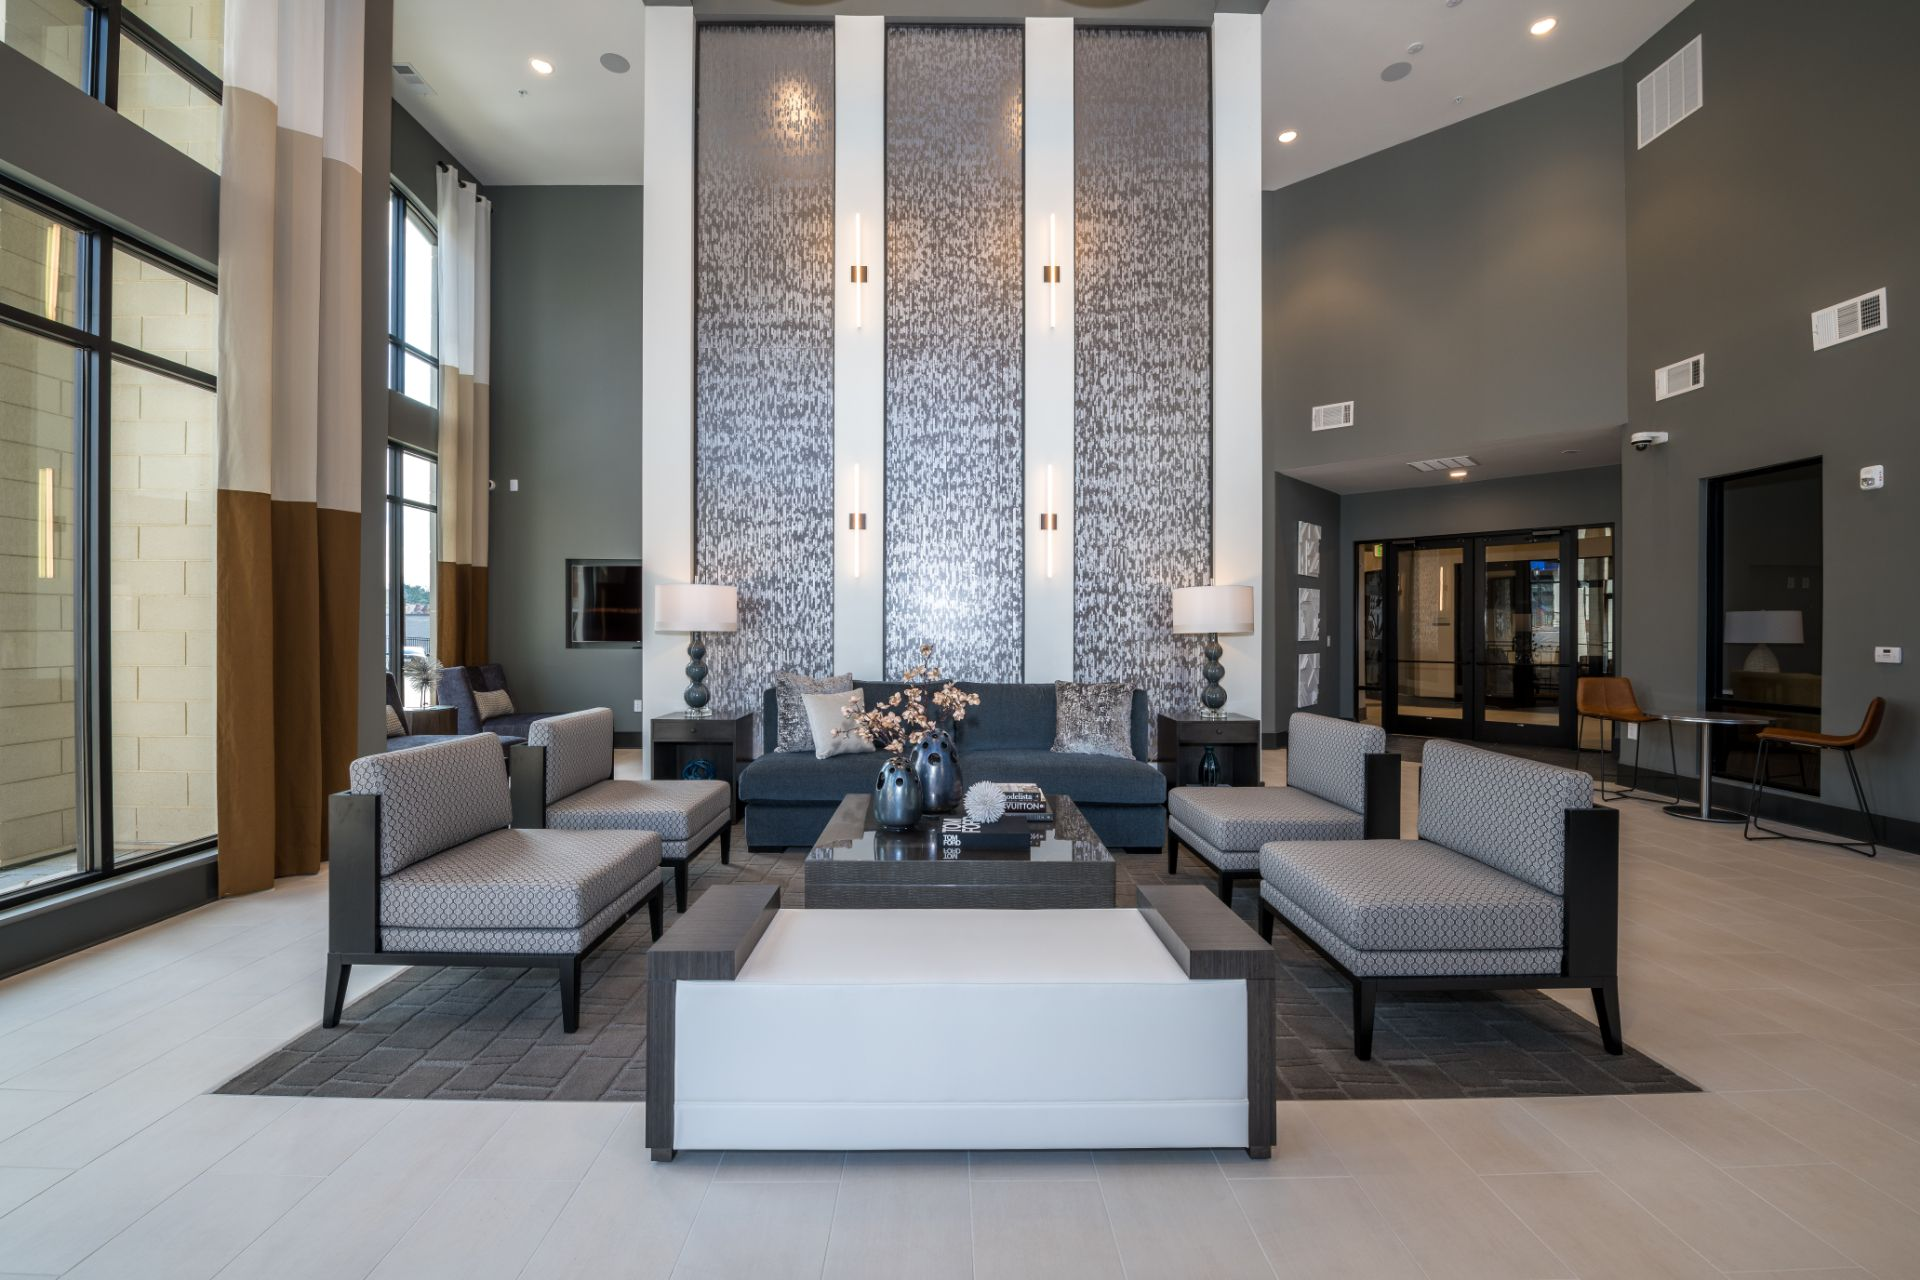 Apartment clubhouse lobby